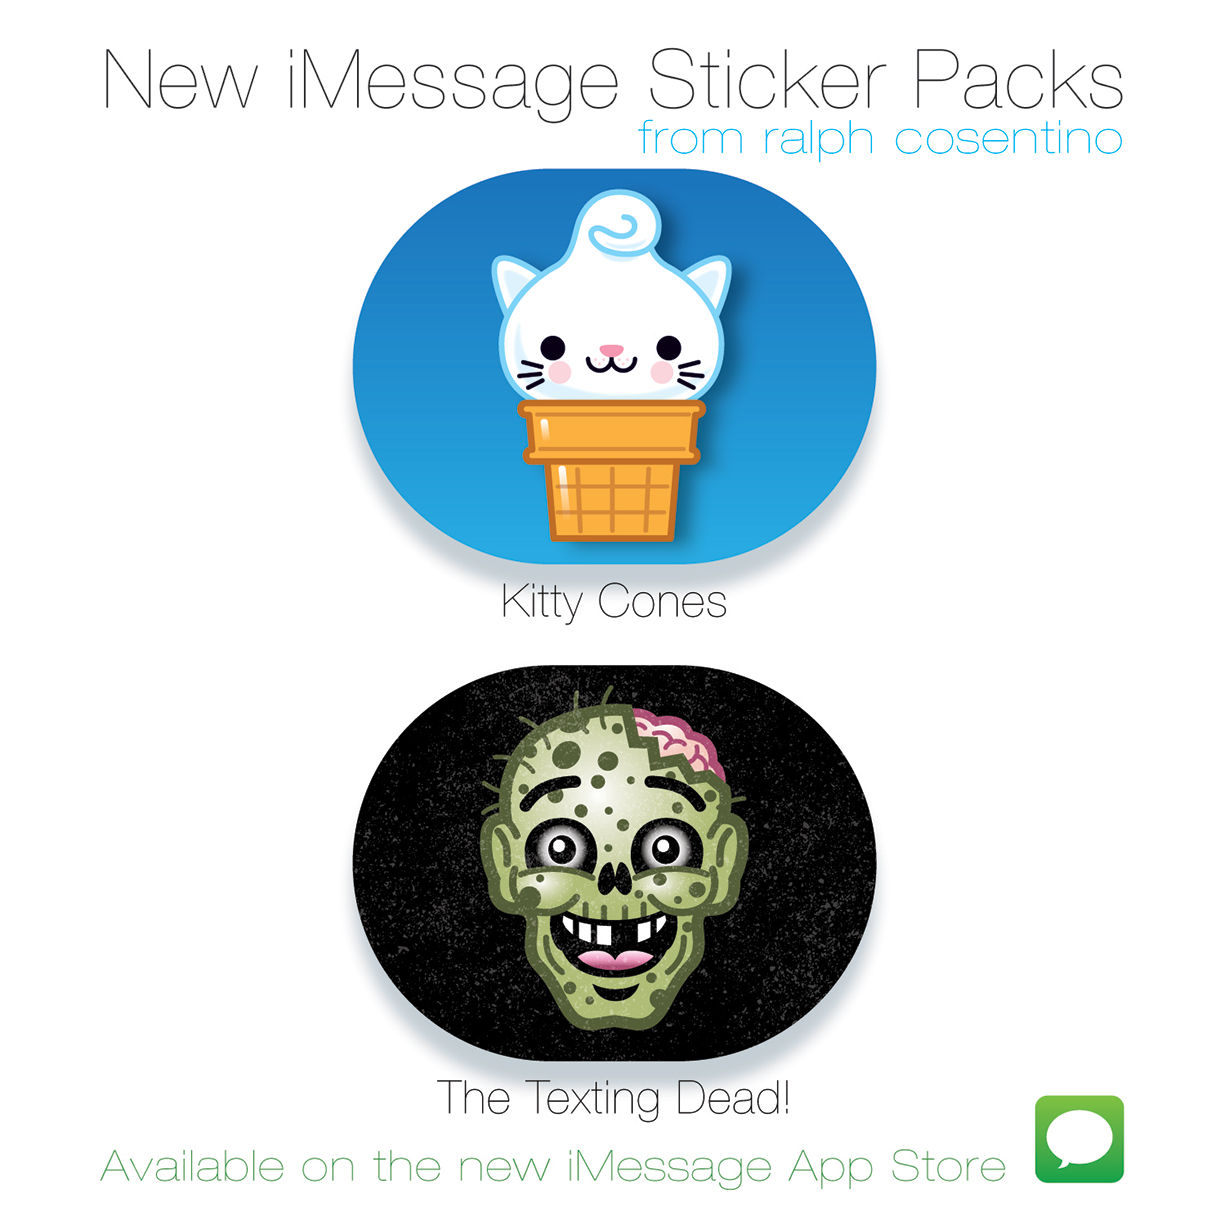 iMessage Sticker Packs